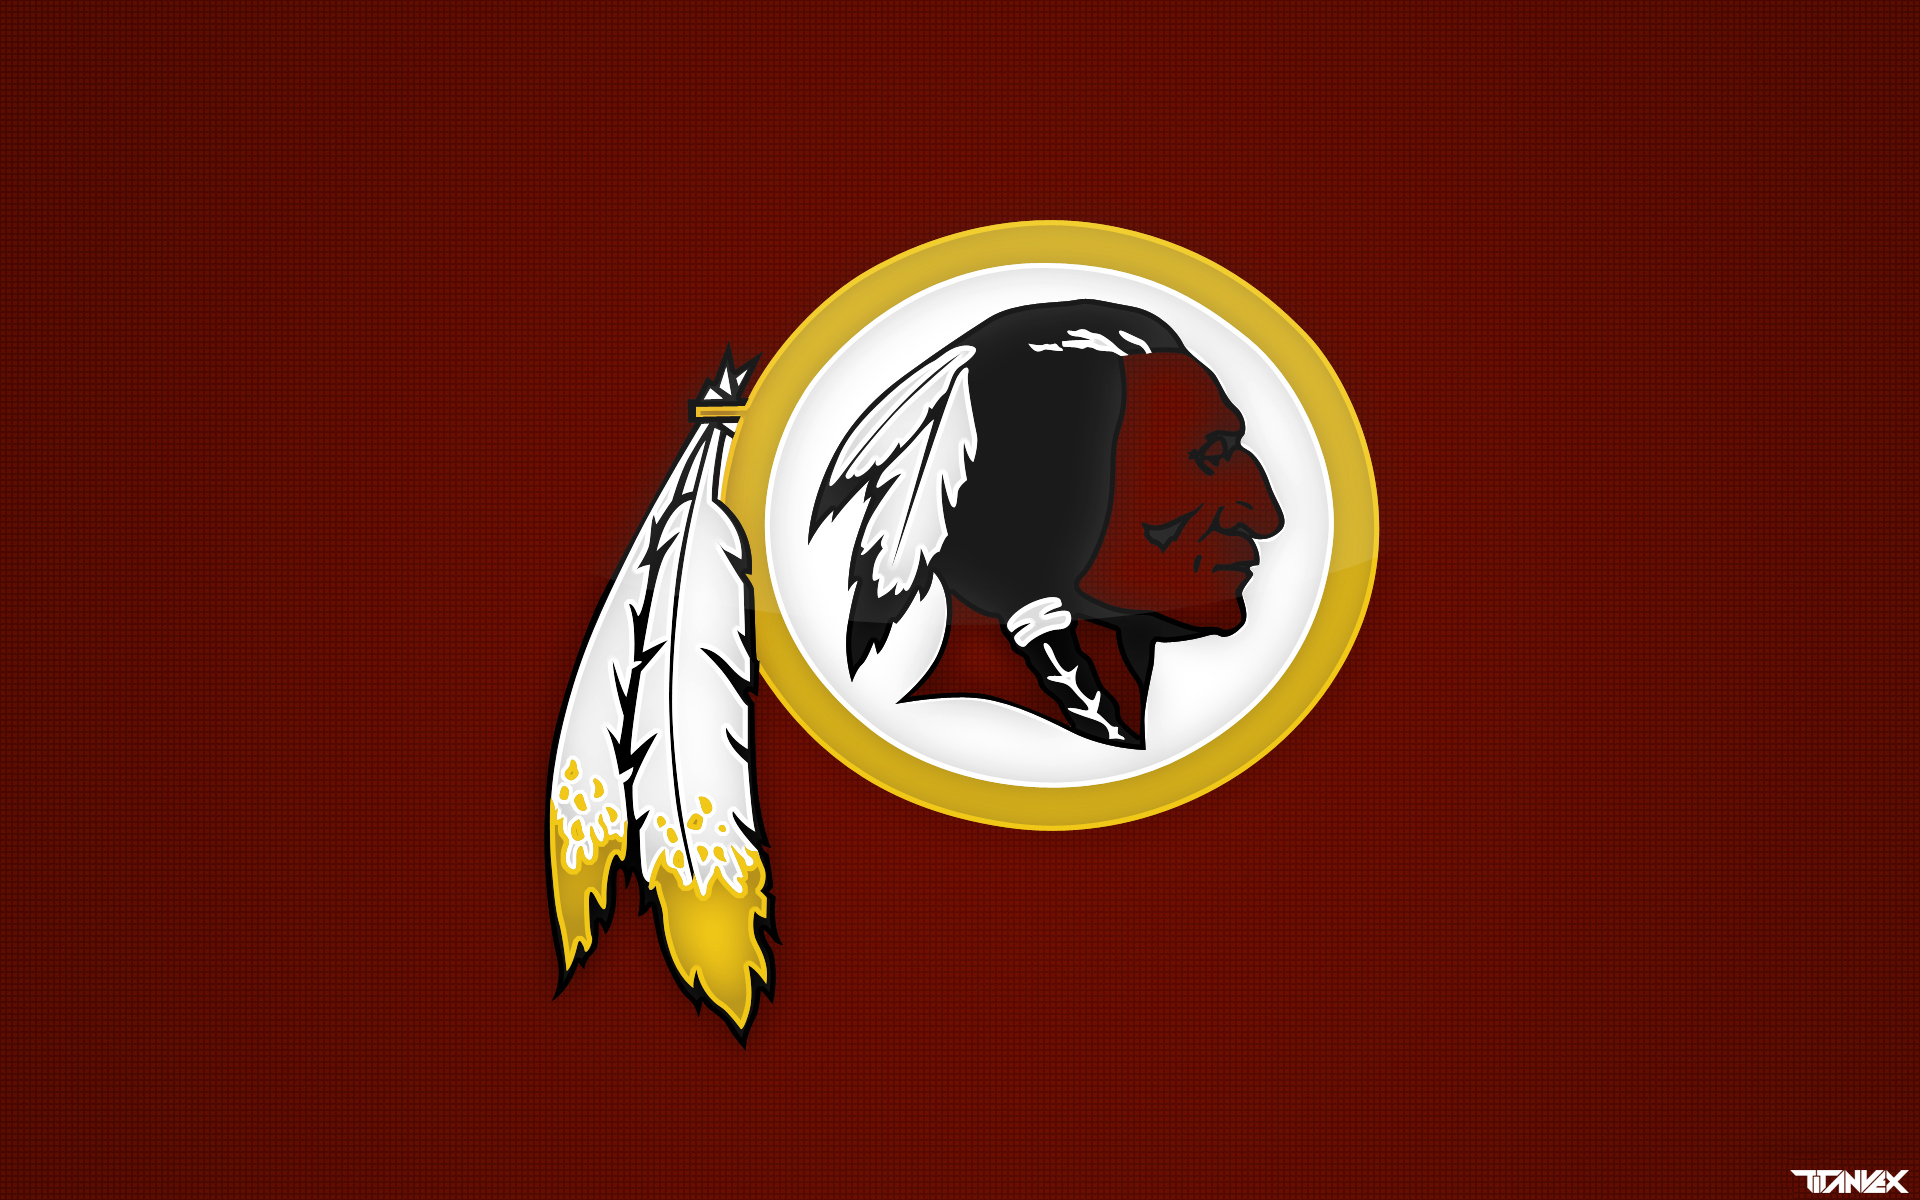 48 Washington Redskins Wallpaper Desktop On Wallpapersafari